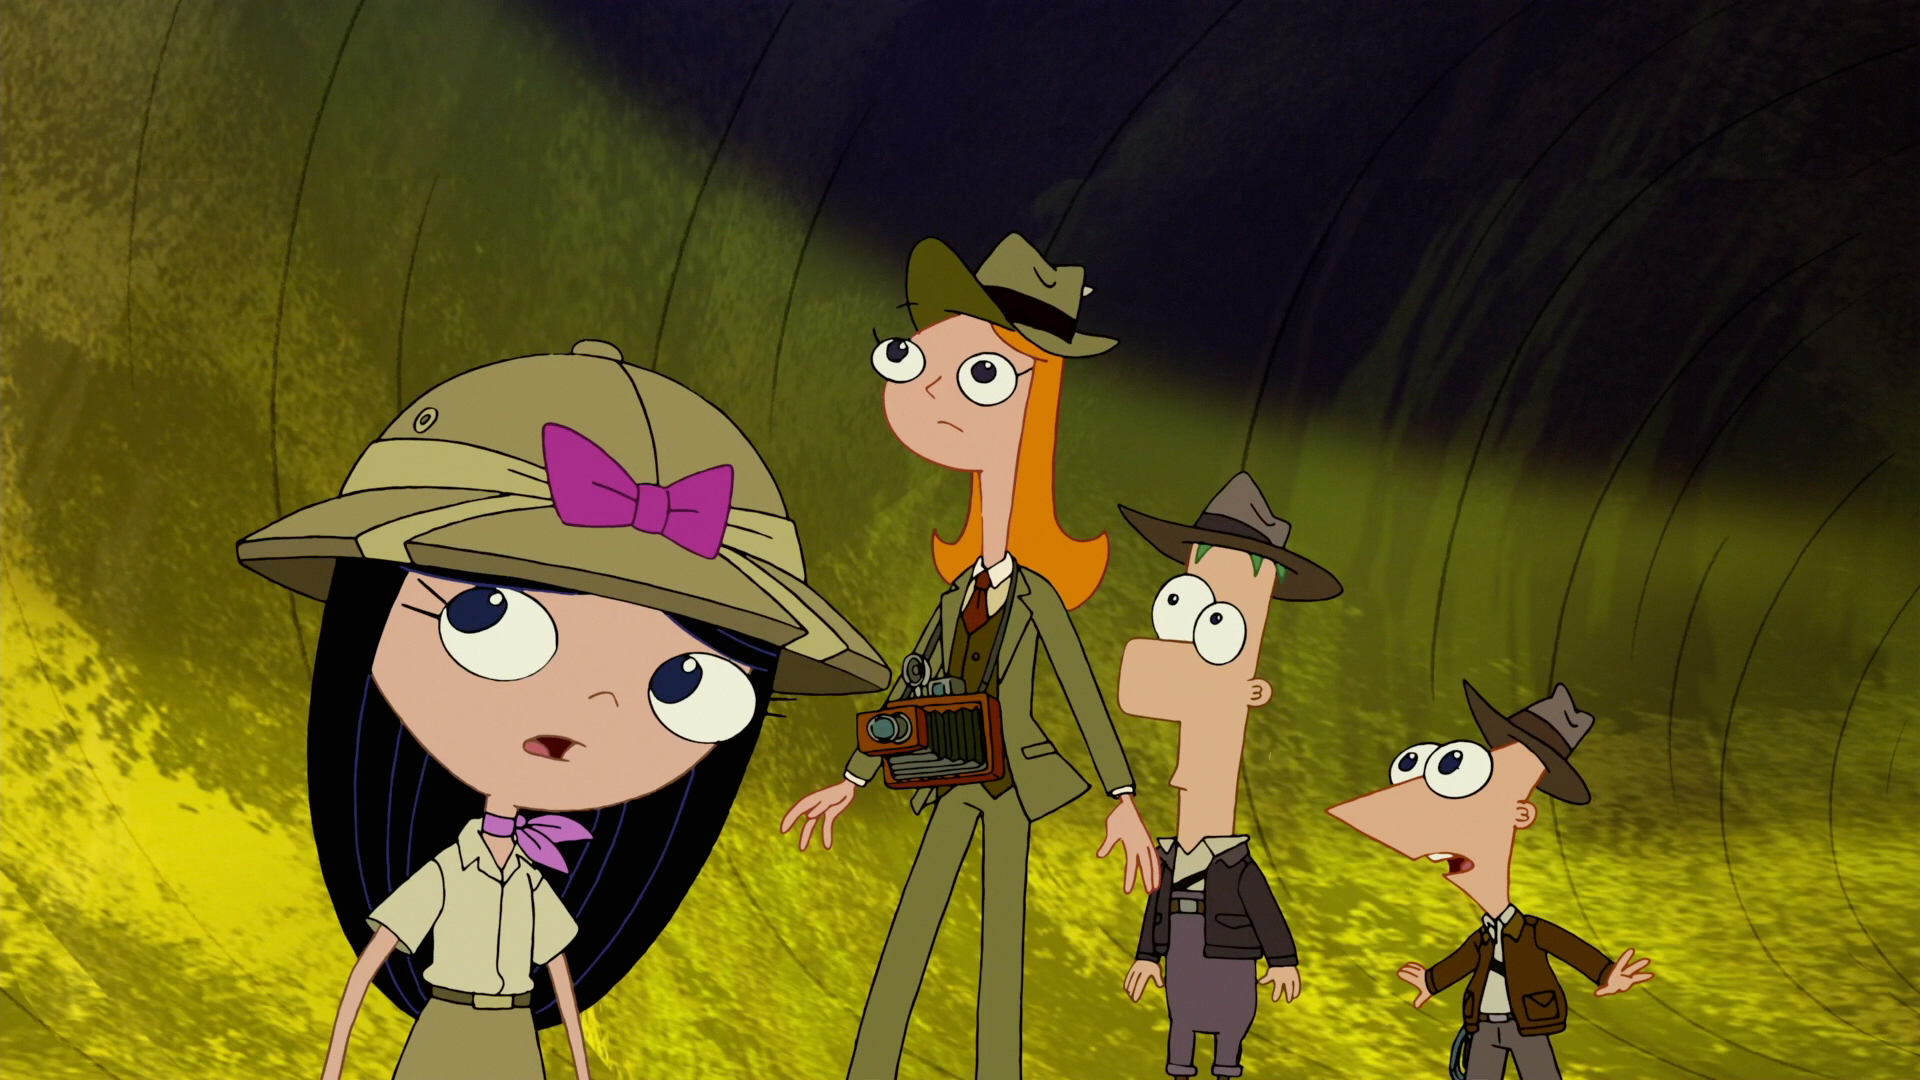 phineas and ferb and the temple of juatchadoon phineas and ferb